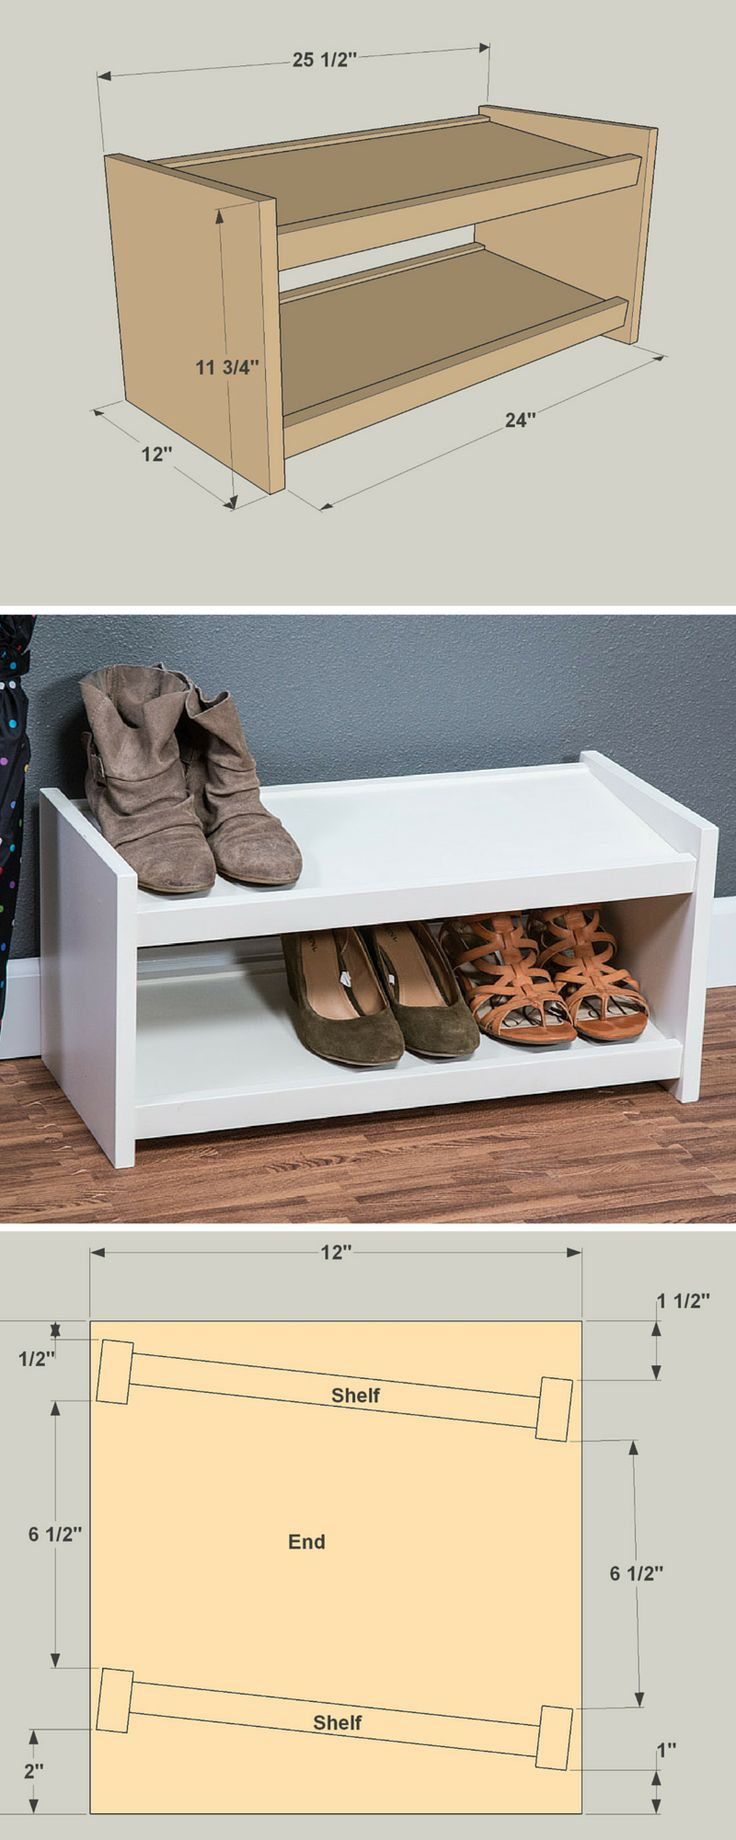 DIY Shoe Storage Rack | Free project plans at buildsomething.com | Shoes can quickly pile up, causing unnecessary clutter in the closet. Here's a simple two-tier shoe organizer that keeps several pairs of shoes tidy and visible. It's a quick and easy project that you'll use every day.